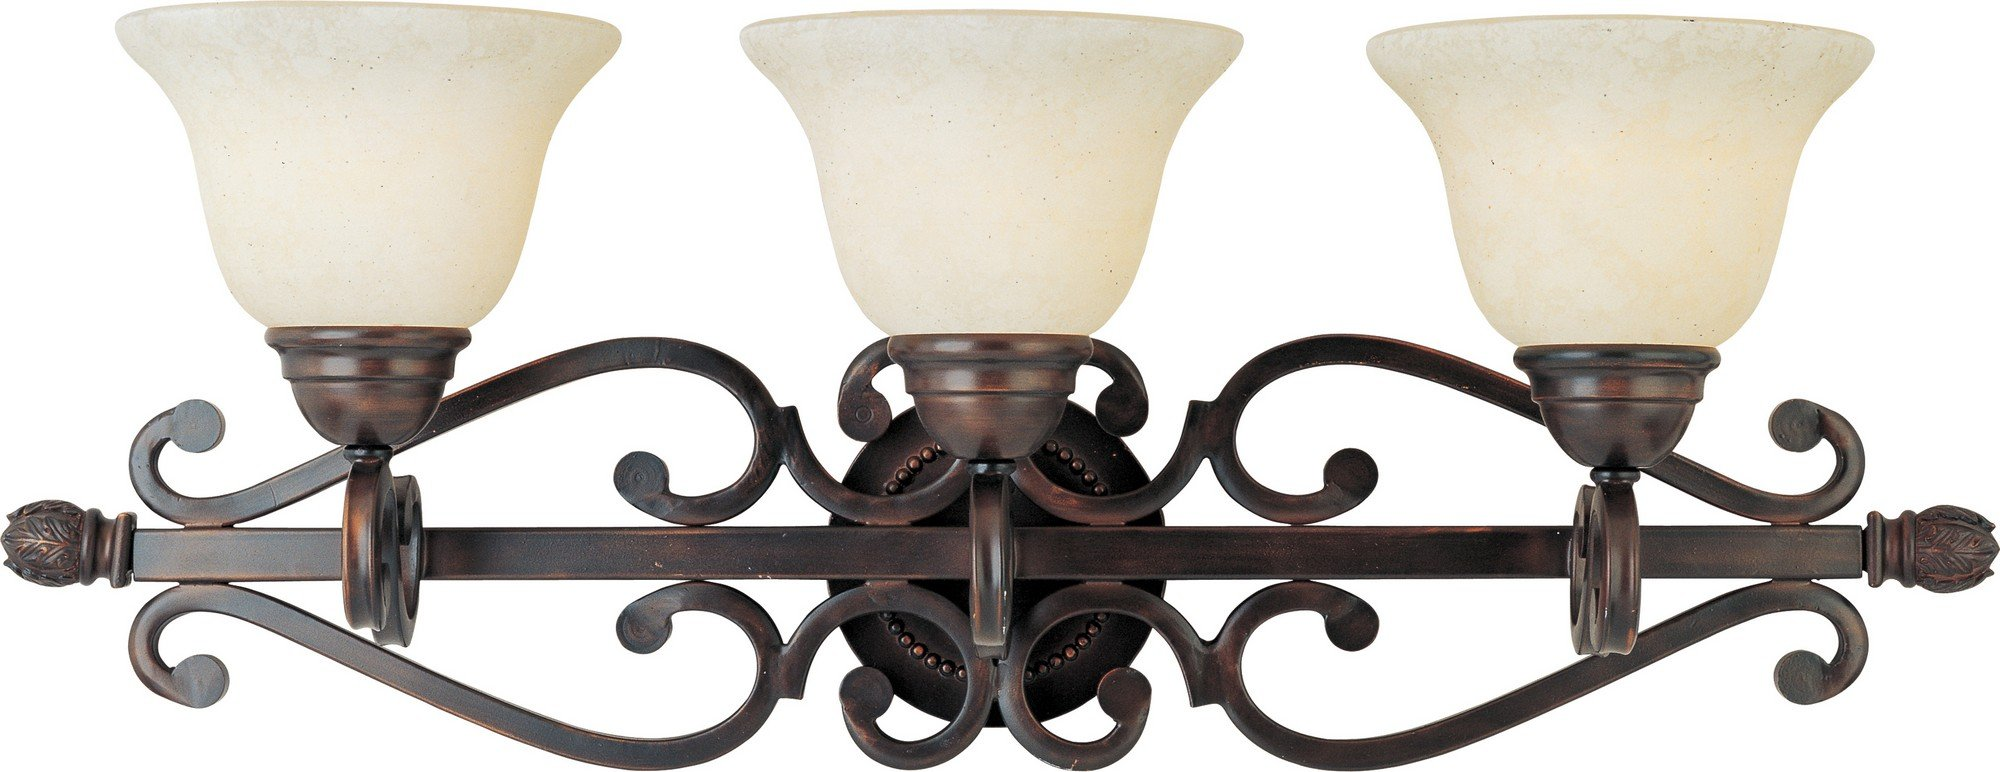 Maxim Lighting 12213FIOI Manor 3-Light Bath Vanity, Oil Rubbed Bronze with Frosted Ivory Glass by Maxim Lighting